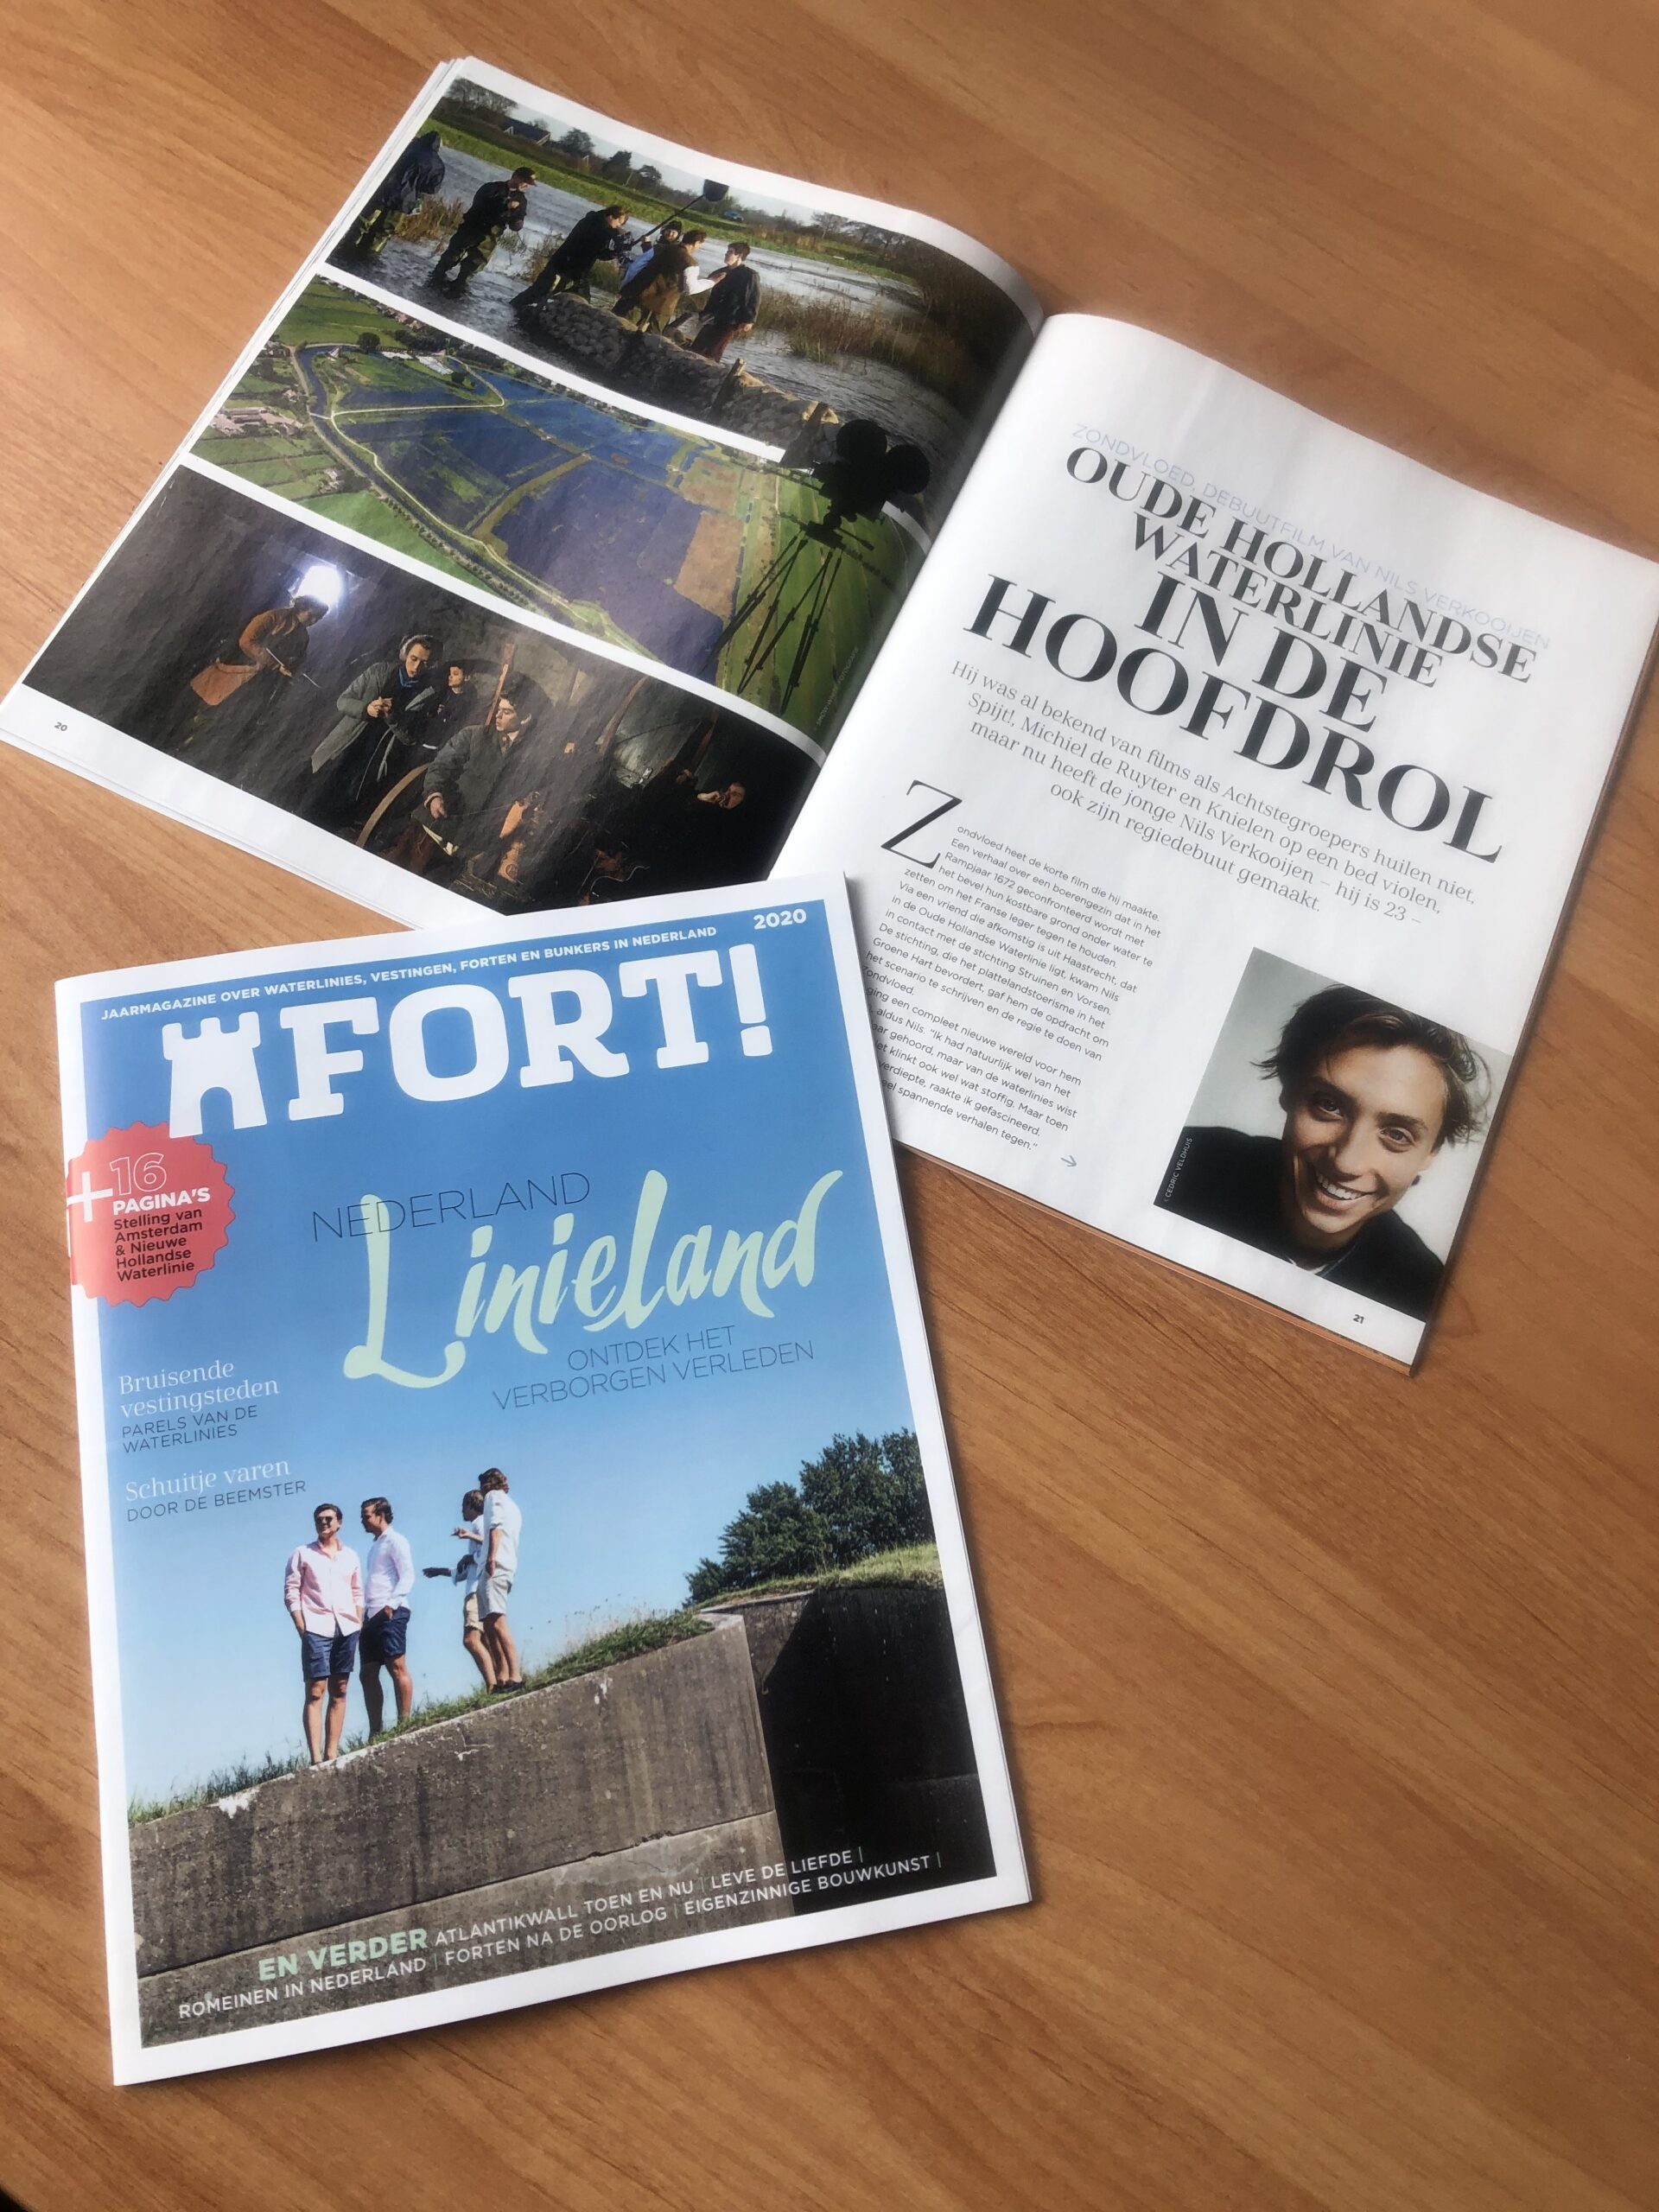 OHWL staat in Fort! magazine